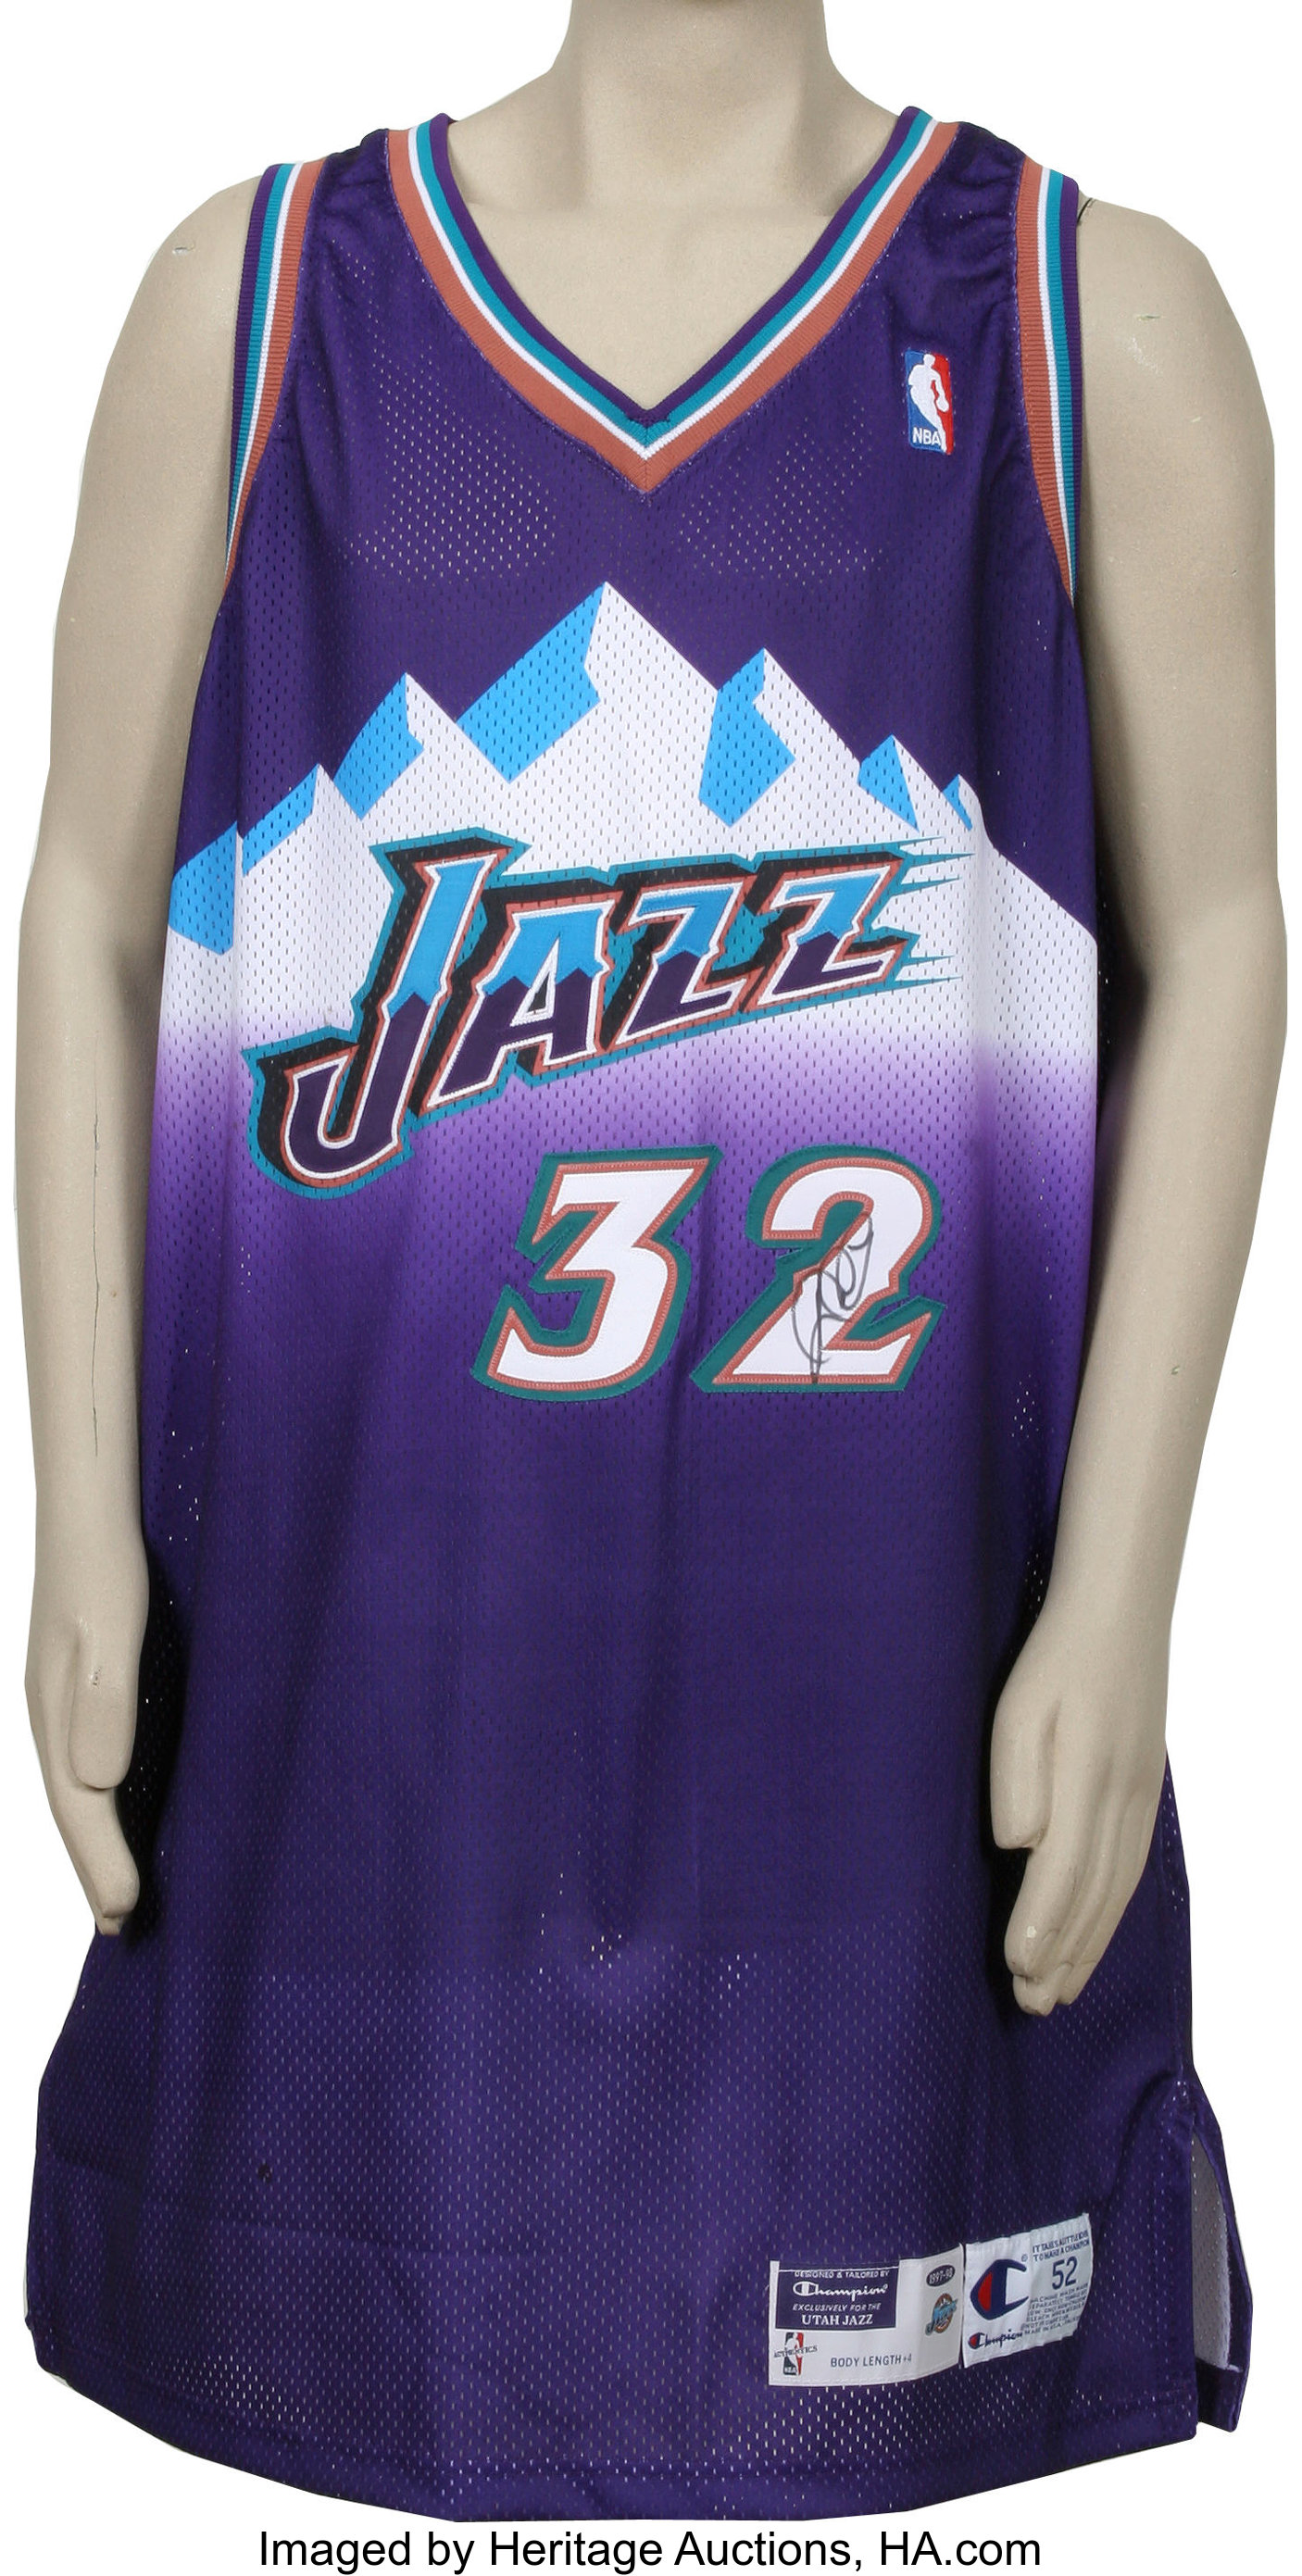 new arrival e6cd2 4a2a7 Karl Malone Double Signed Jersey. Two-time NBA MVP Karl ...